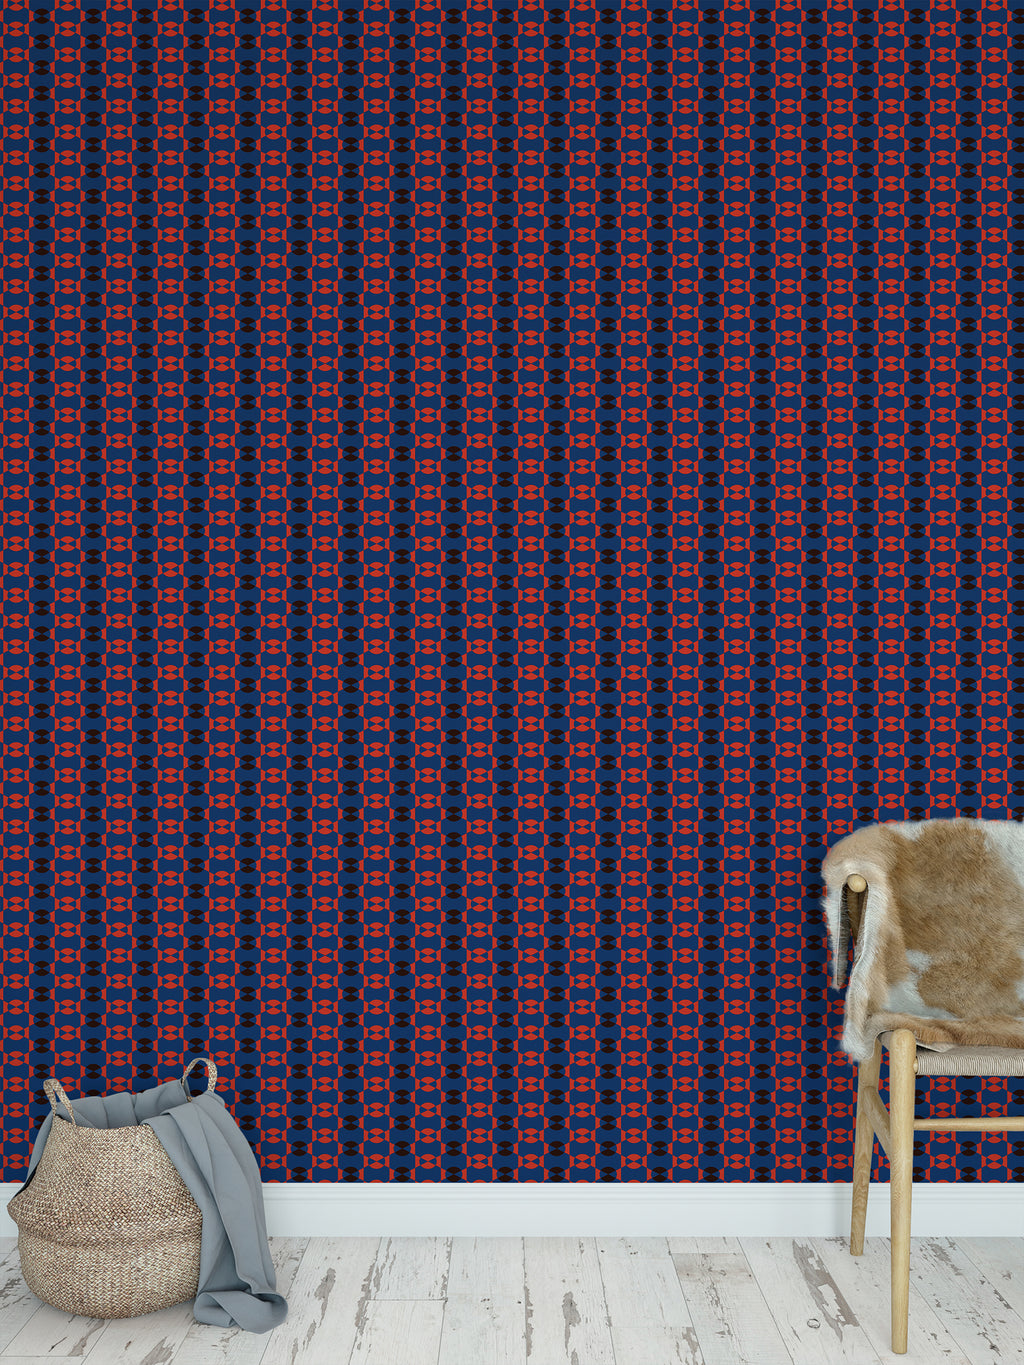 JOYFUL BLUE AND RED SMALLSCALE Peel and Stick Wallpaper By Jackie Reynolds